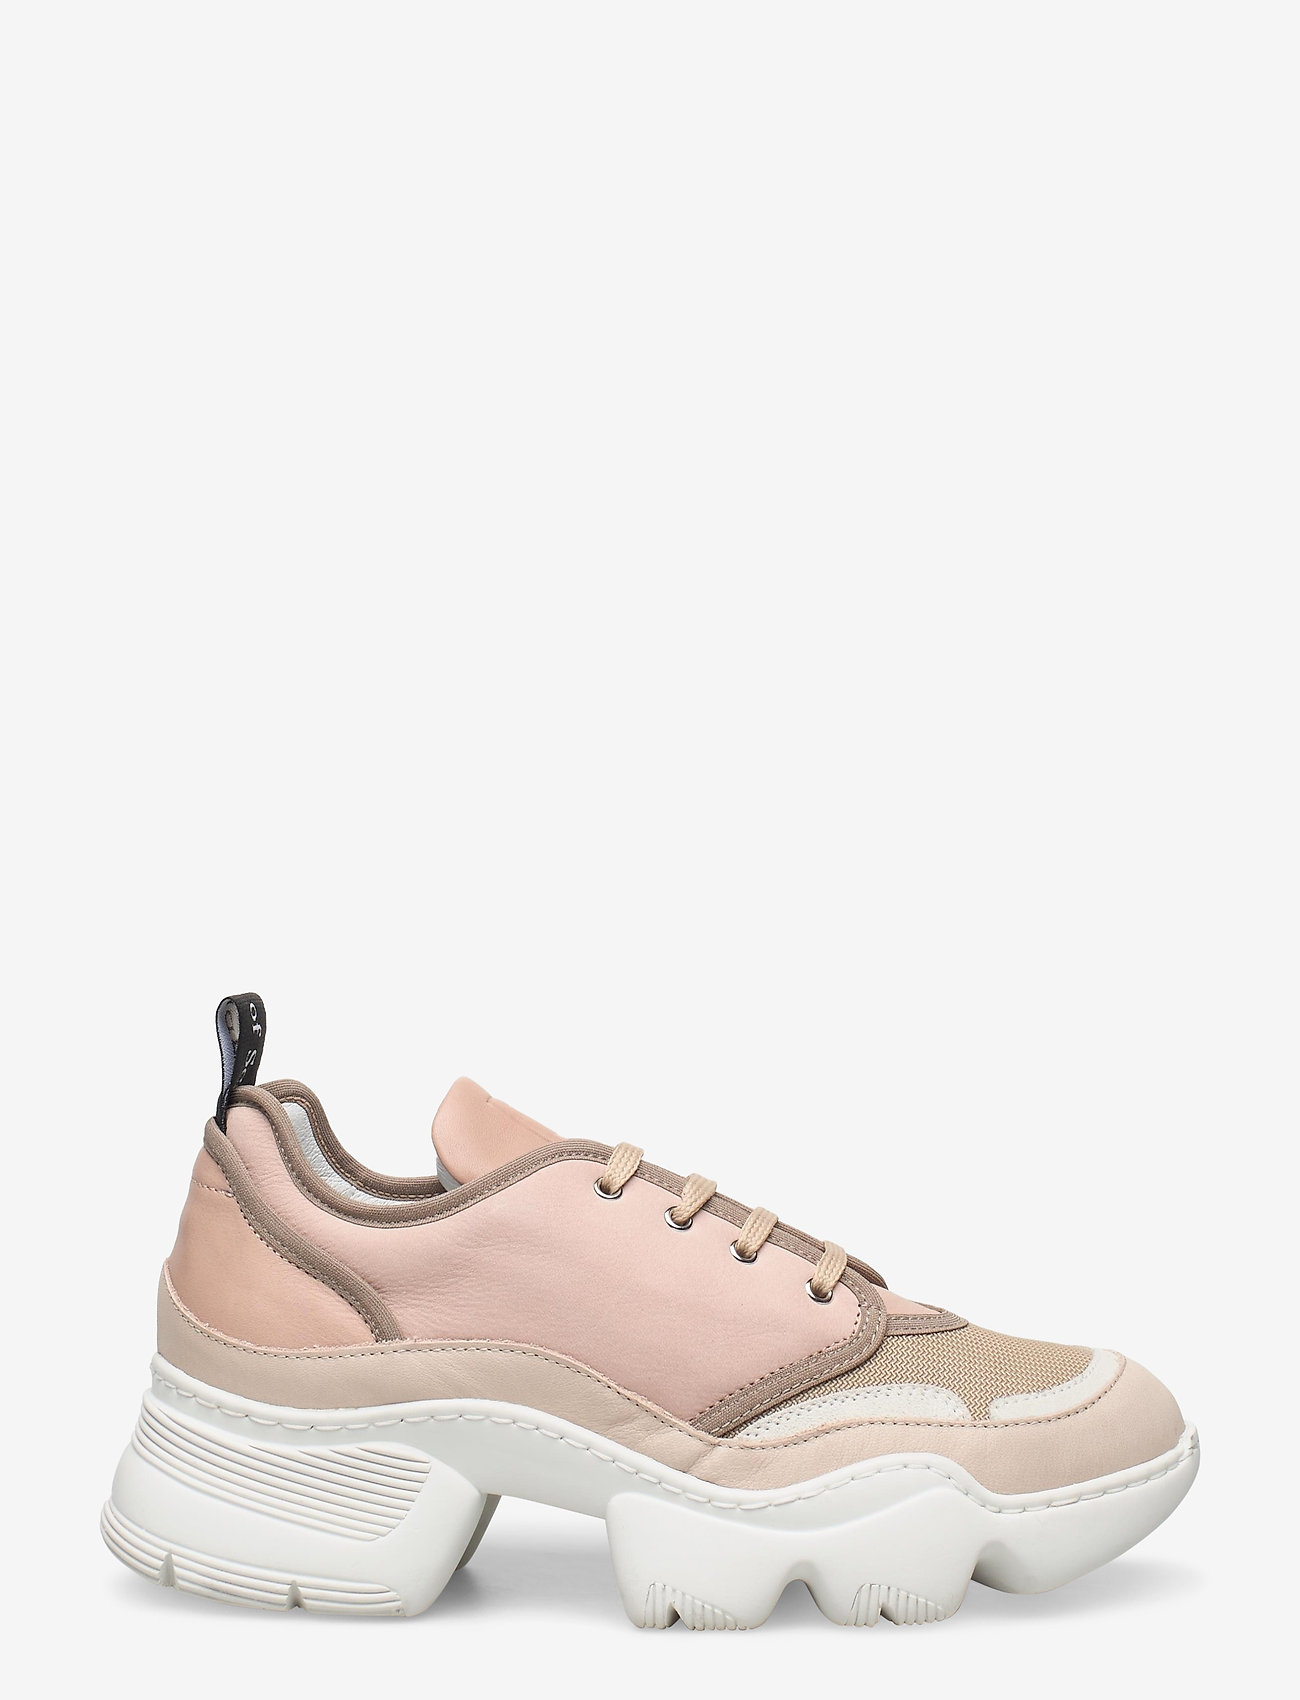 Nude of Scandinavia - SIBYL - chunky sneakers - mix / silver pink - 1